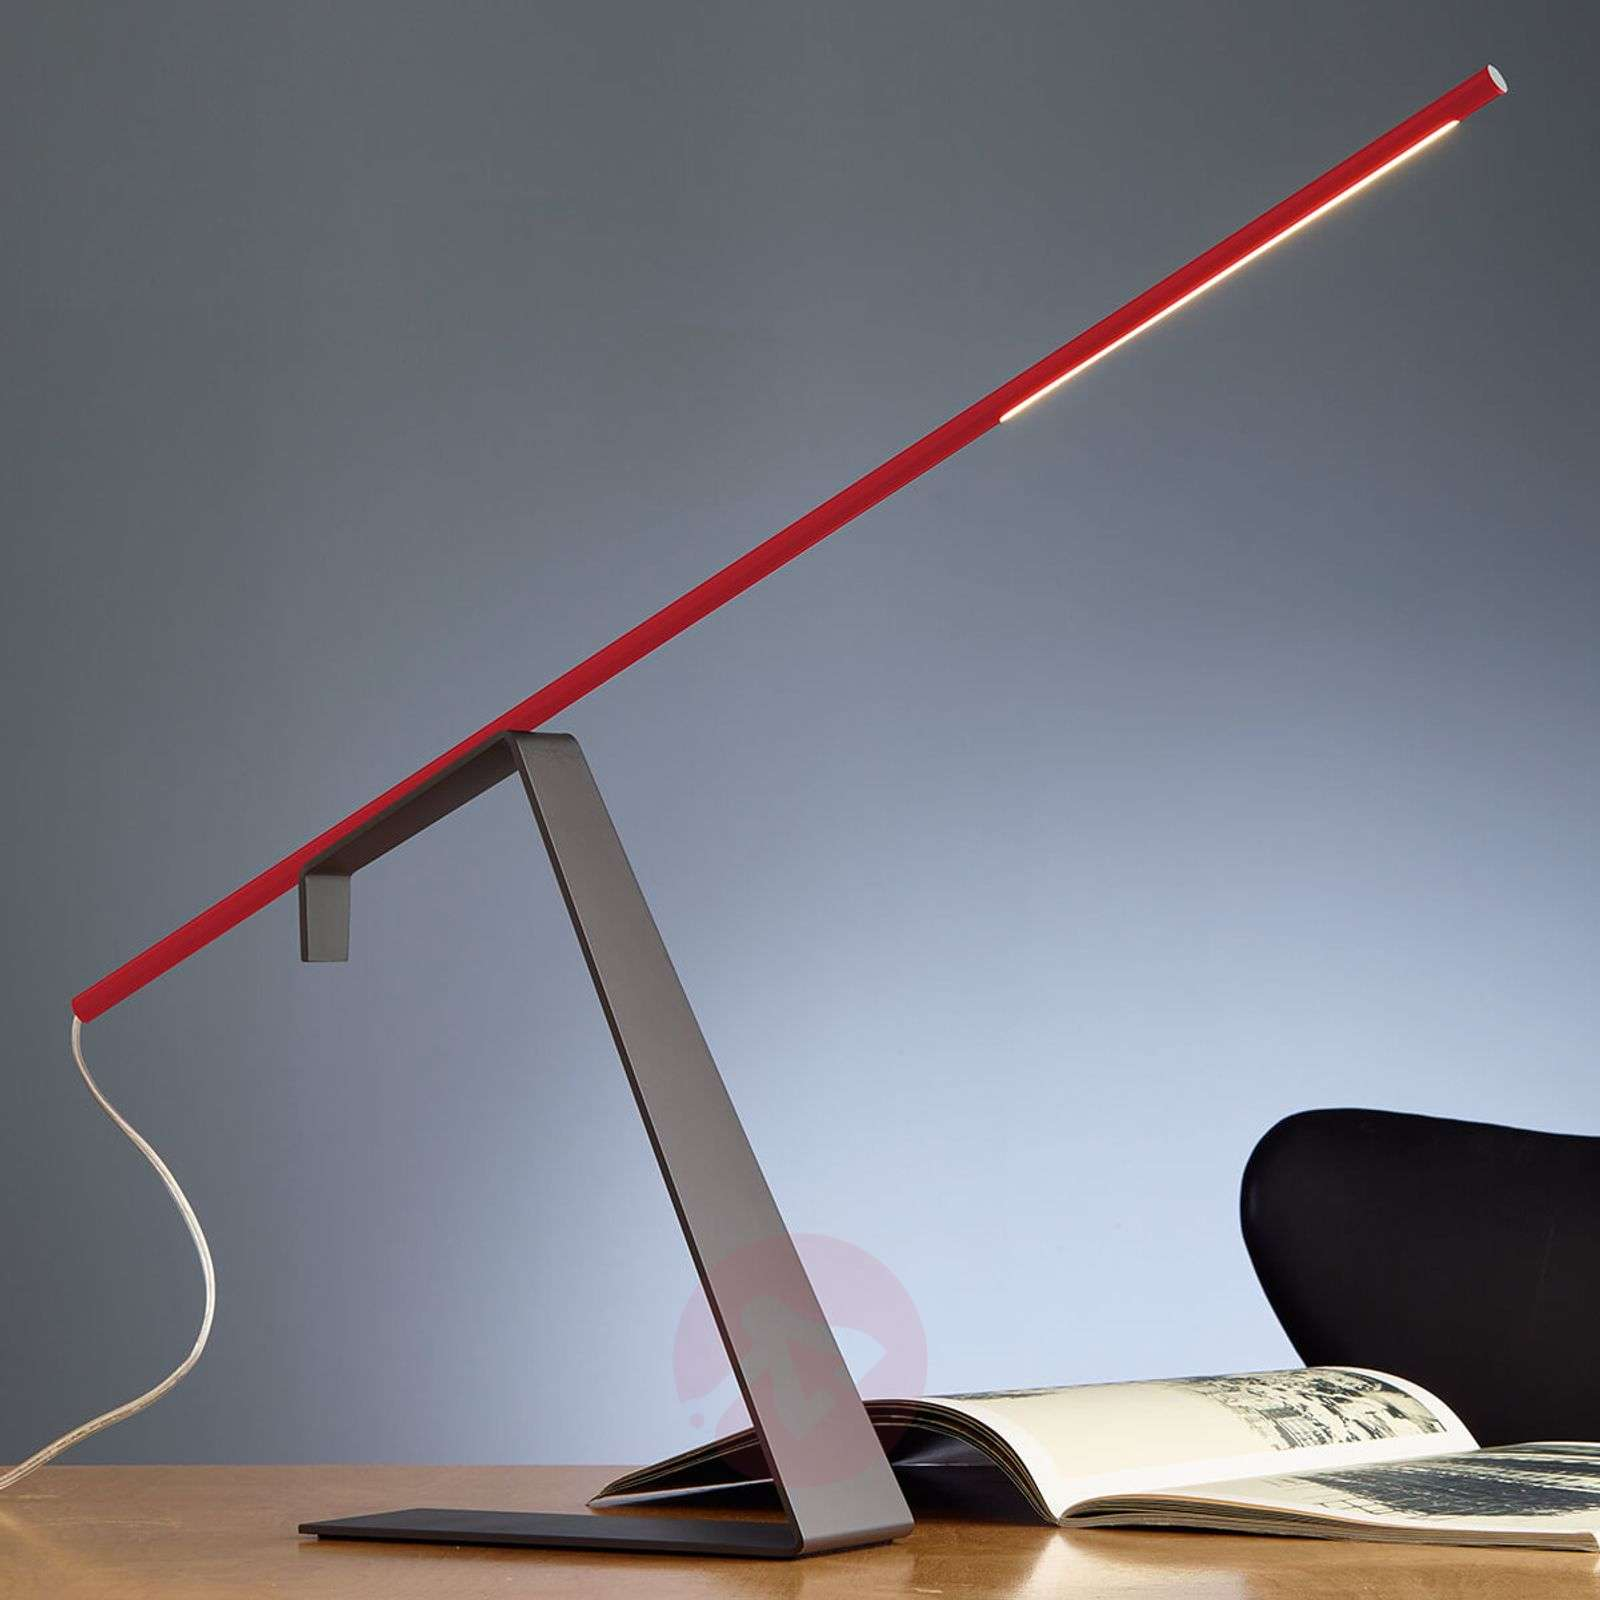 Jella dimmable LED designer desk lamp-9030229-01